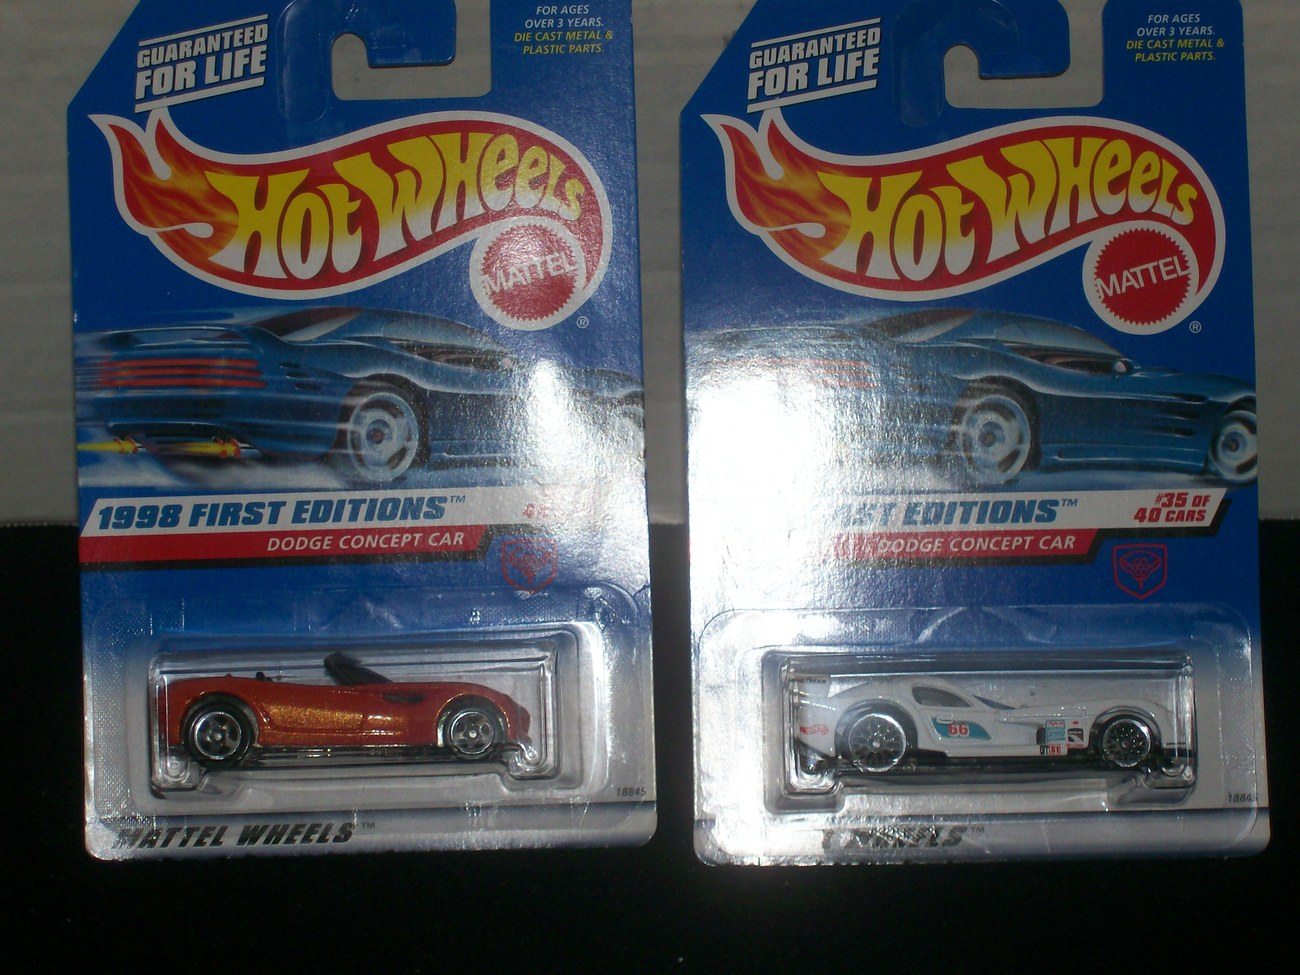 Hot Wheels 1998 First Edition Dodge Concept Car/s Error 35 Of 40